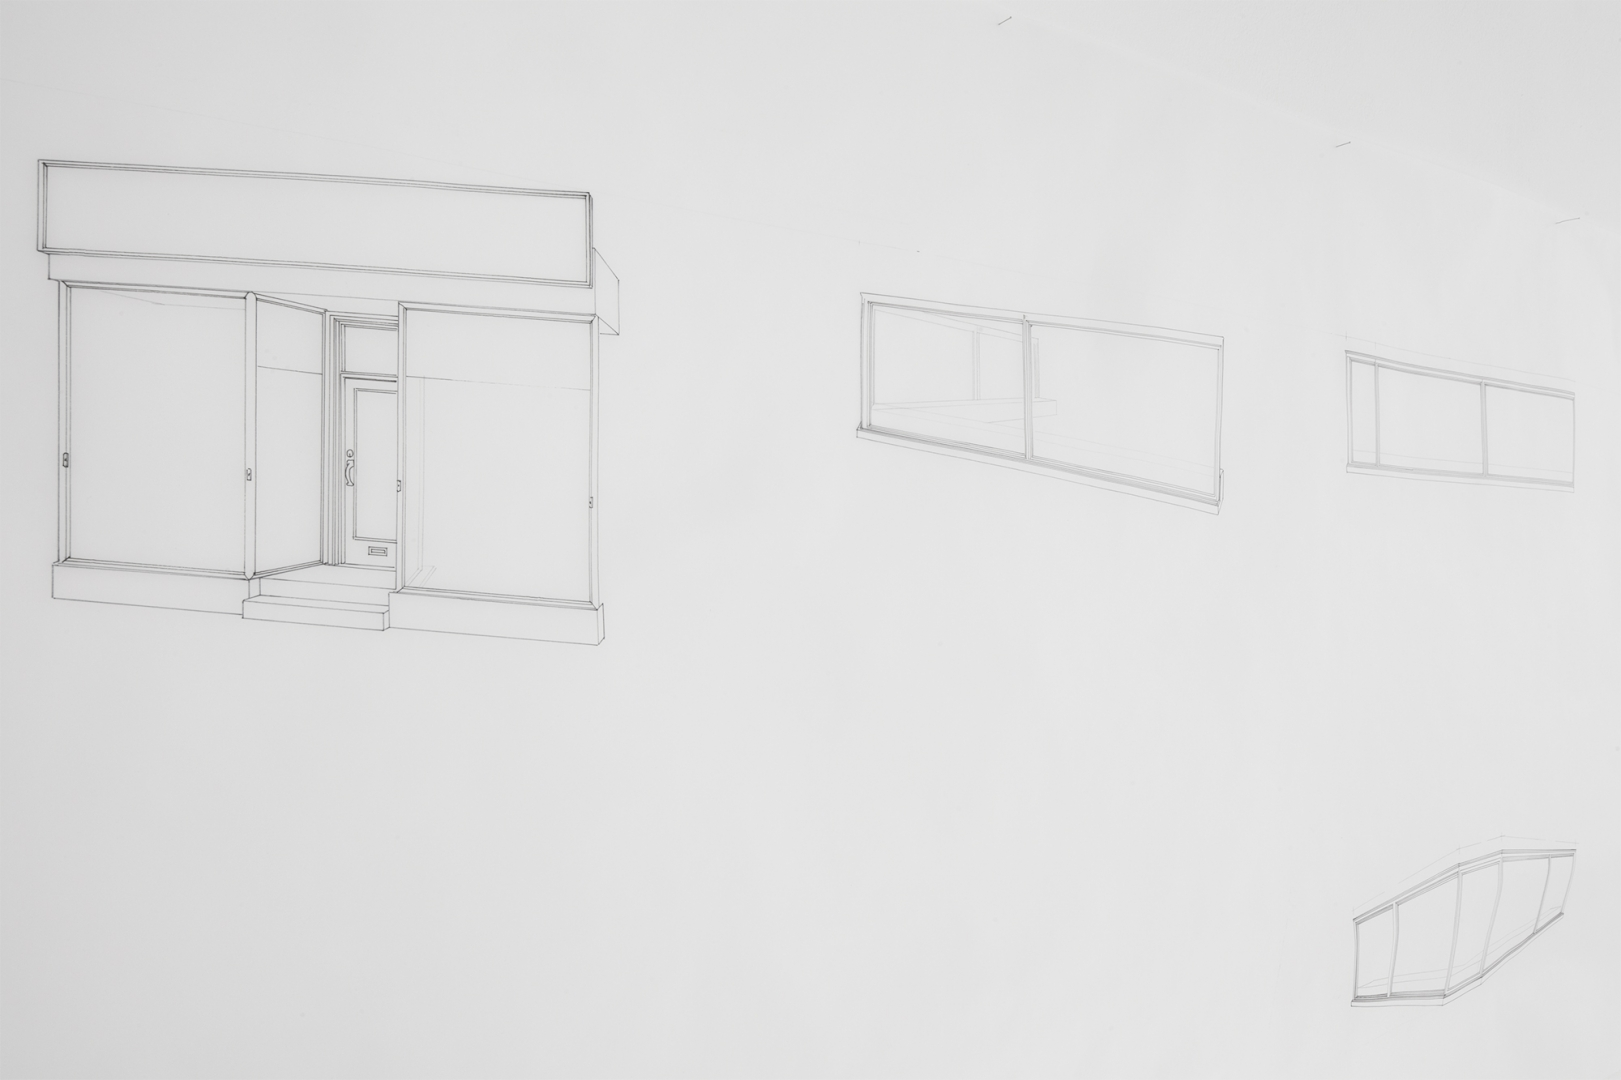 Joshua Leon - An Unfinished History of Glass (Three proposals to reform the windows: A Shop, A Restaurant, A Synagogue), 2021